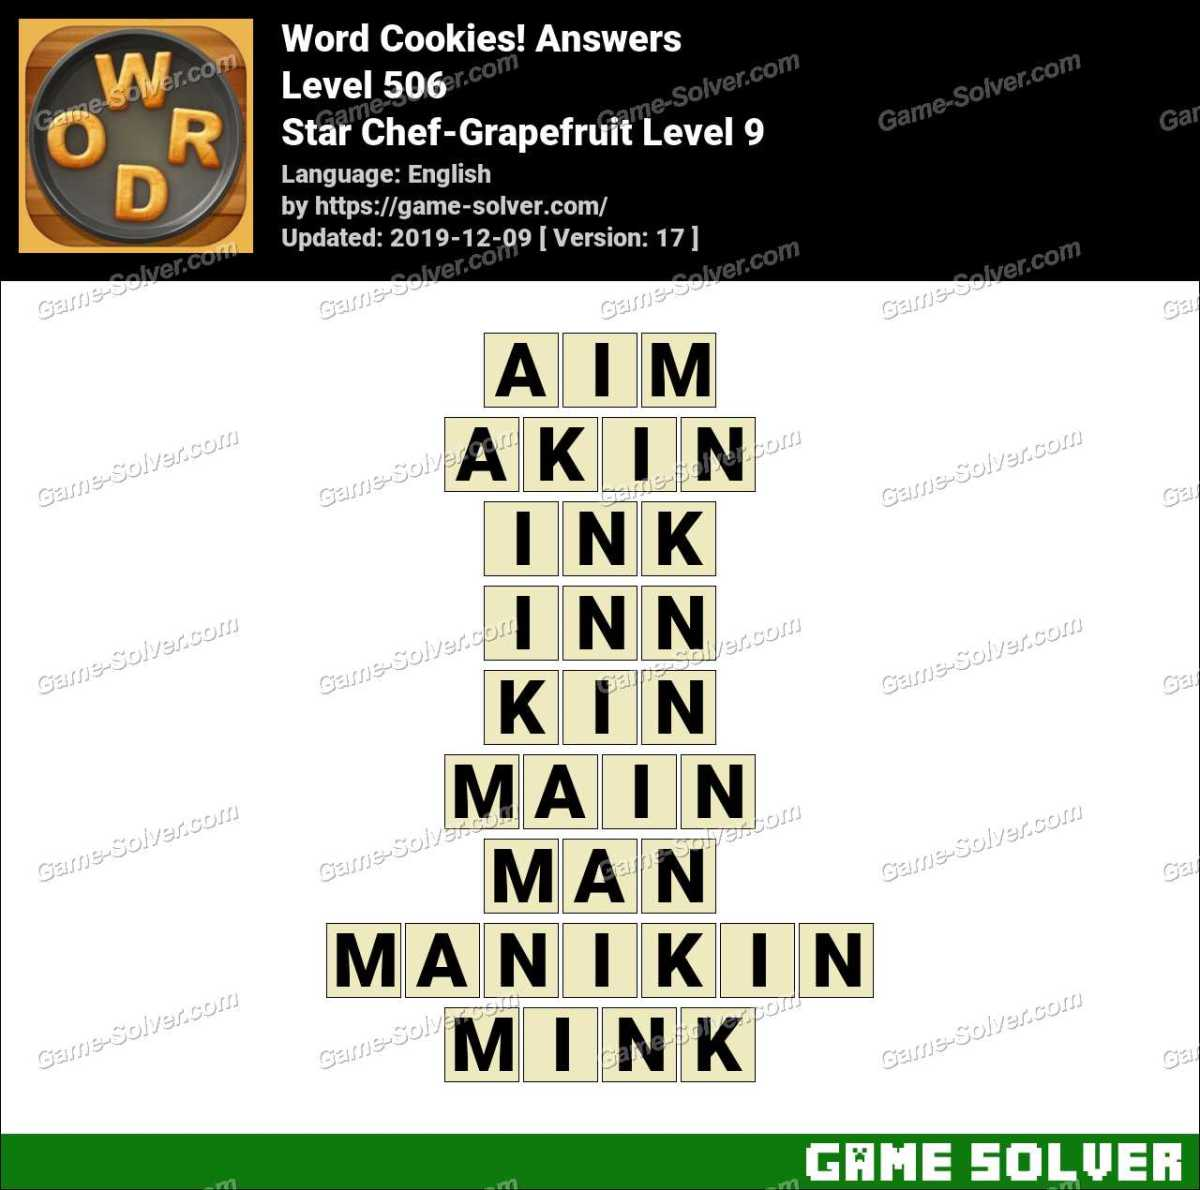 Word Cookies Star Chef-Grapefruit Level 9 Answers